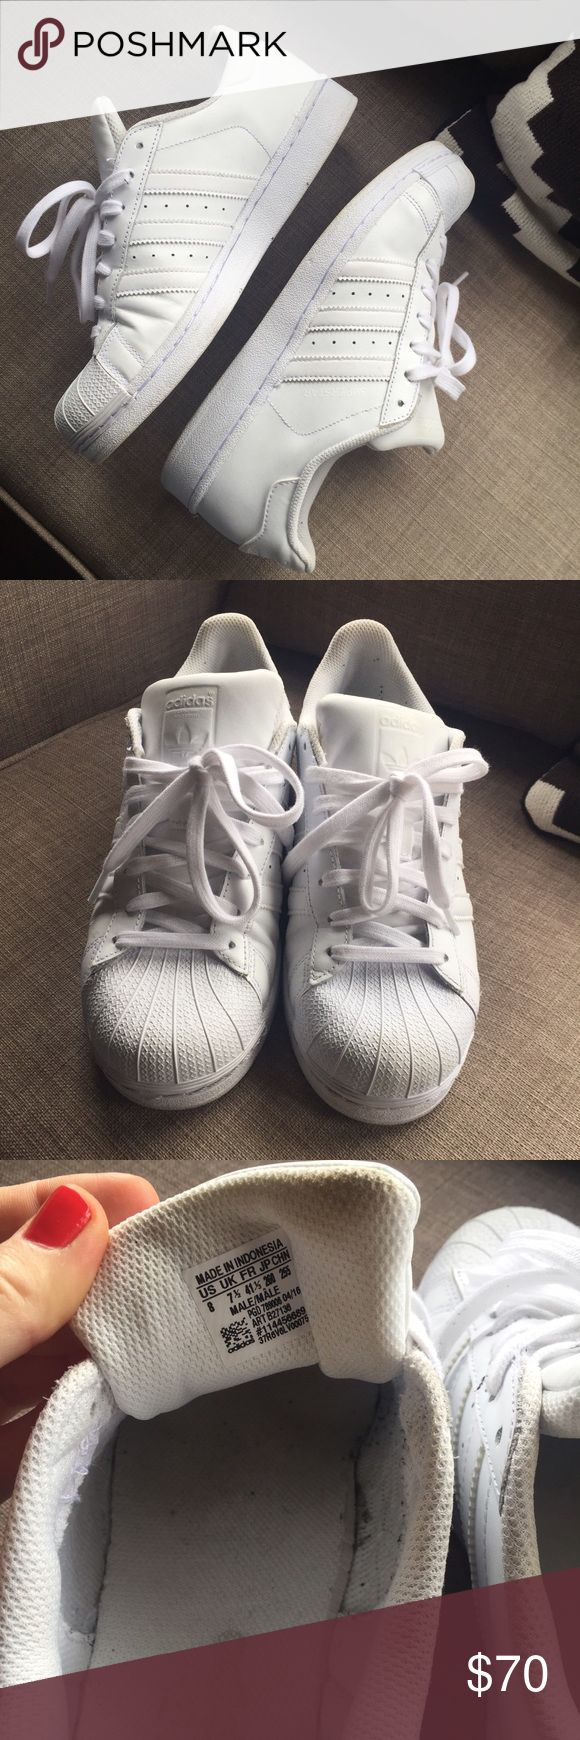 adidas superstar all white size 8M/10W almost new, bought 3 wks ago, worn 5-6 times Adidas Shoes Sneakers